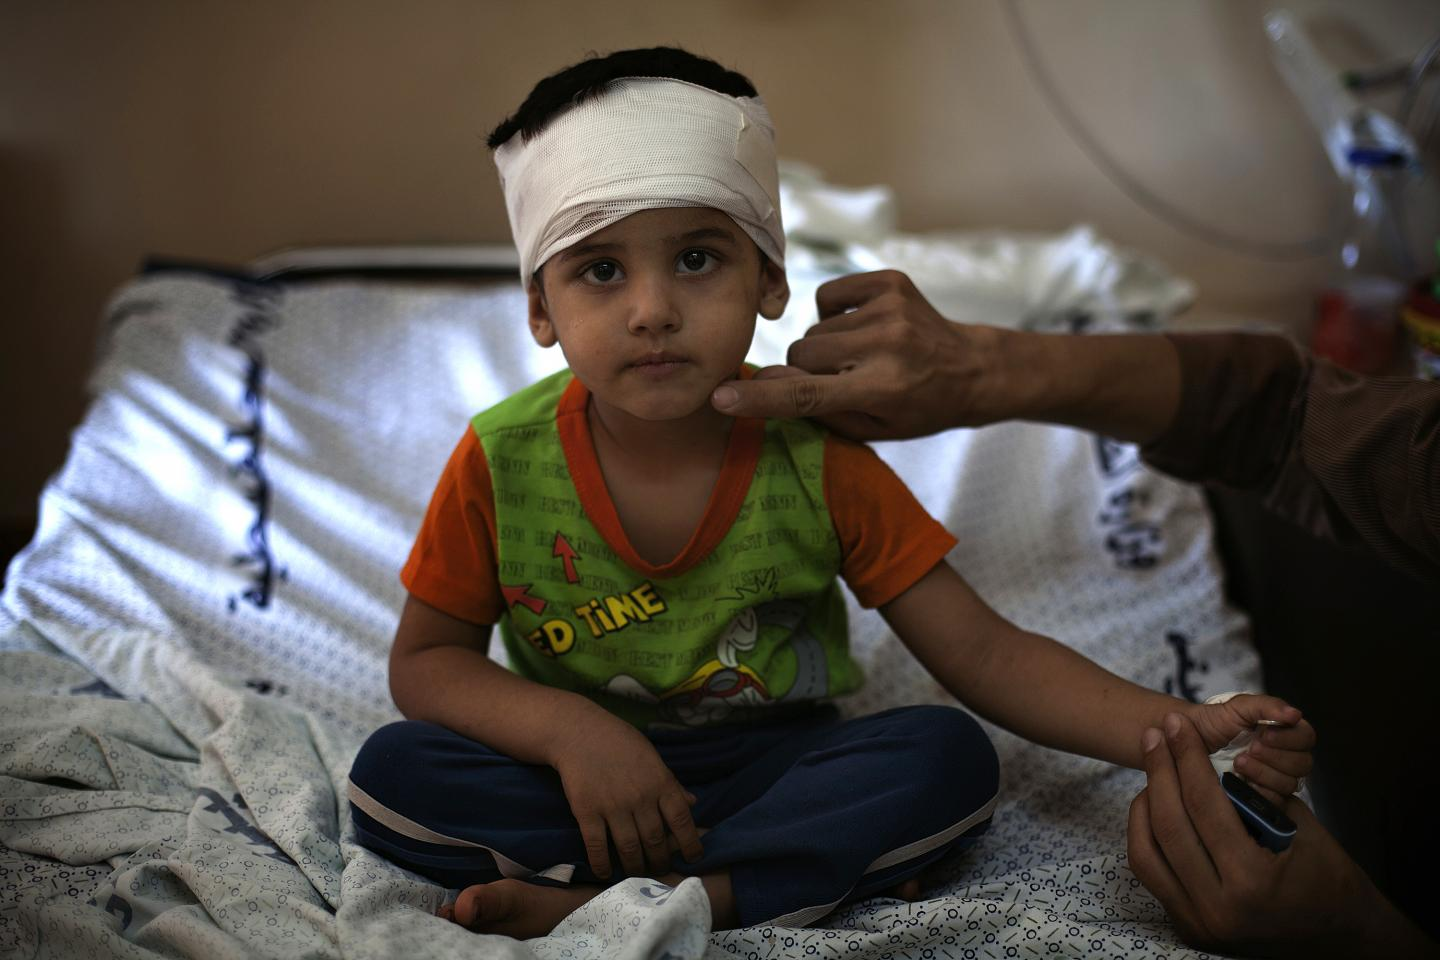 A little boy sits on a hospital bed, his head wrapped in bandages.